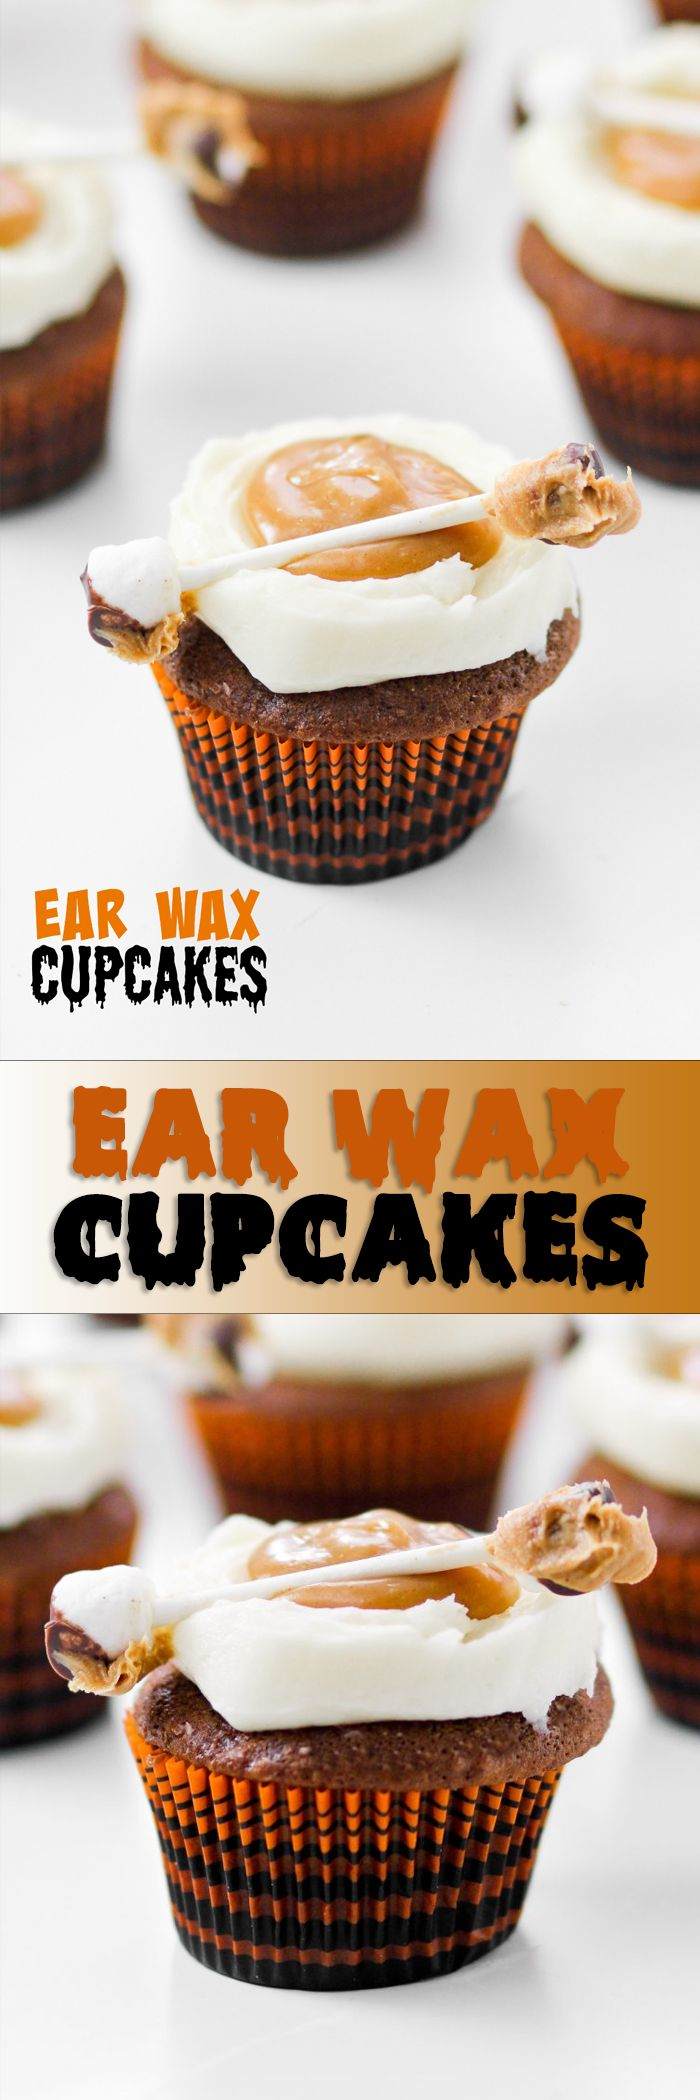 3597 best Everyday Food and Recipes: Desserts images on Pinterest